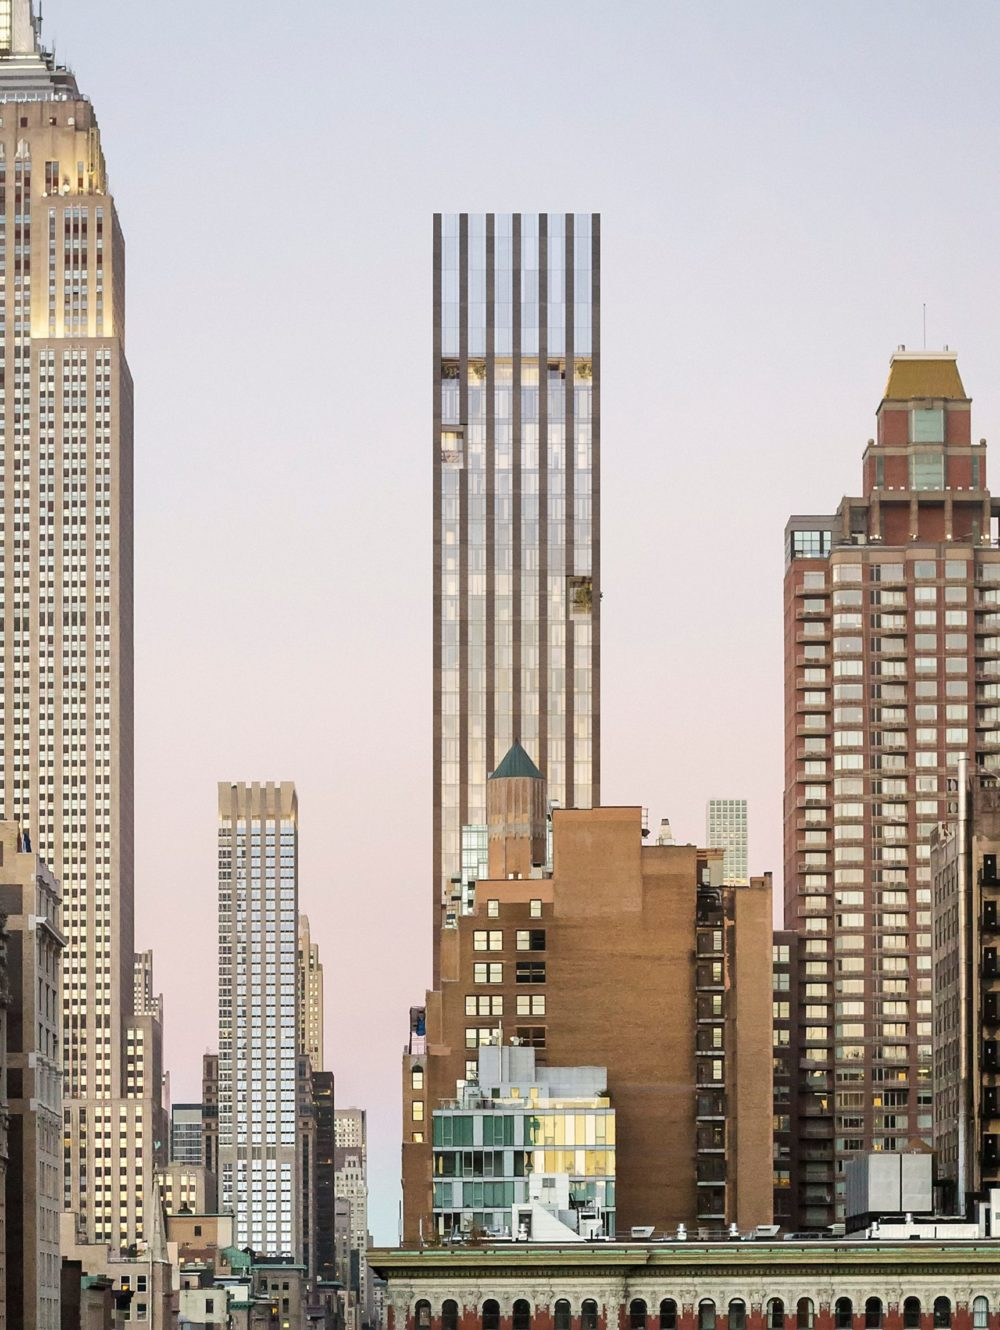 Exterior closeup view of 277 Fifth Avenue condominiums. Includes view of New York City and detailed architectural building.